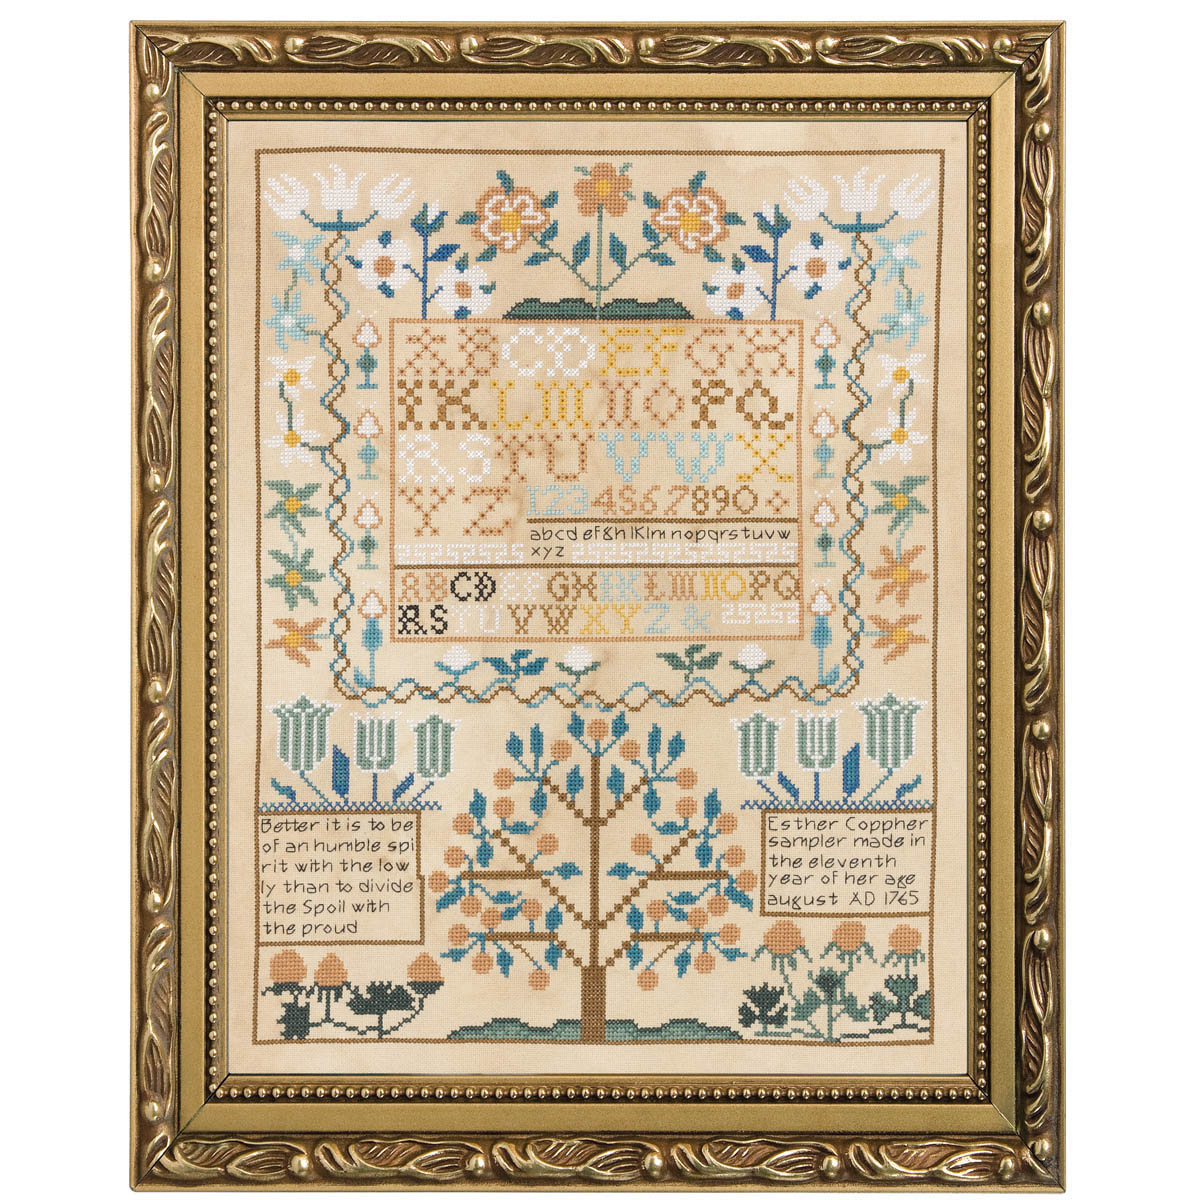 Bucilla ® Counted Cross Stitch - Smithsonian ® - Picture Kits - Esther Copp Sampler 1765